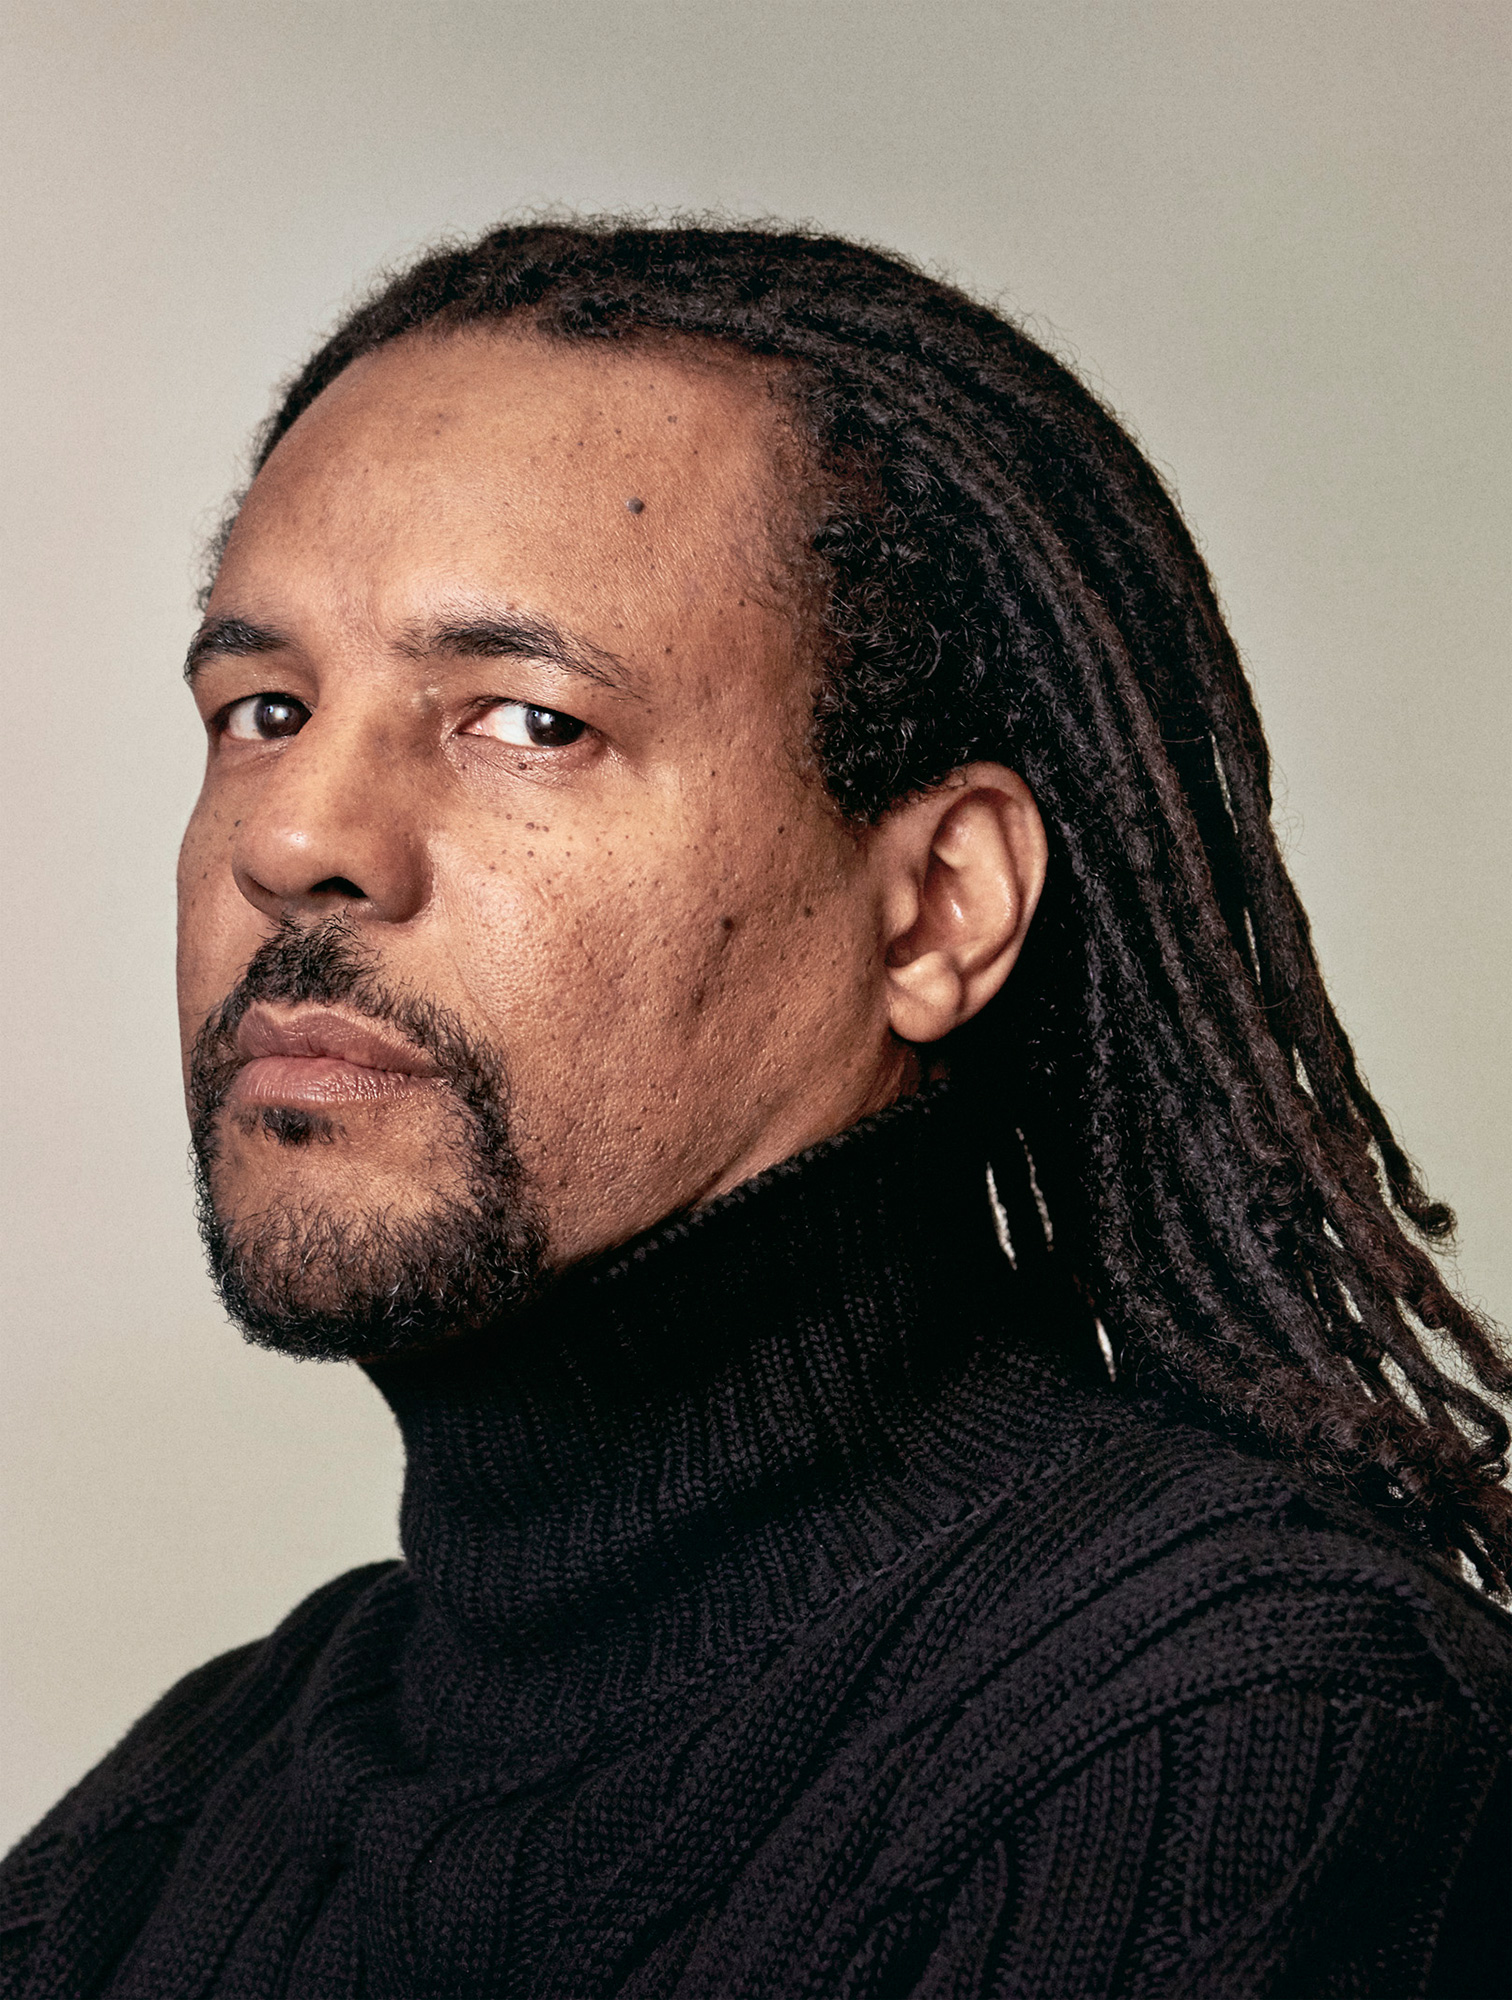 Novelist Colson Whitehead photographed in New York City on Nov. 6, 2016.From  The Best of Culture 2016.  Dec. 19, 2016 issue.